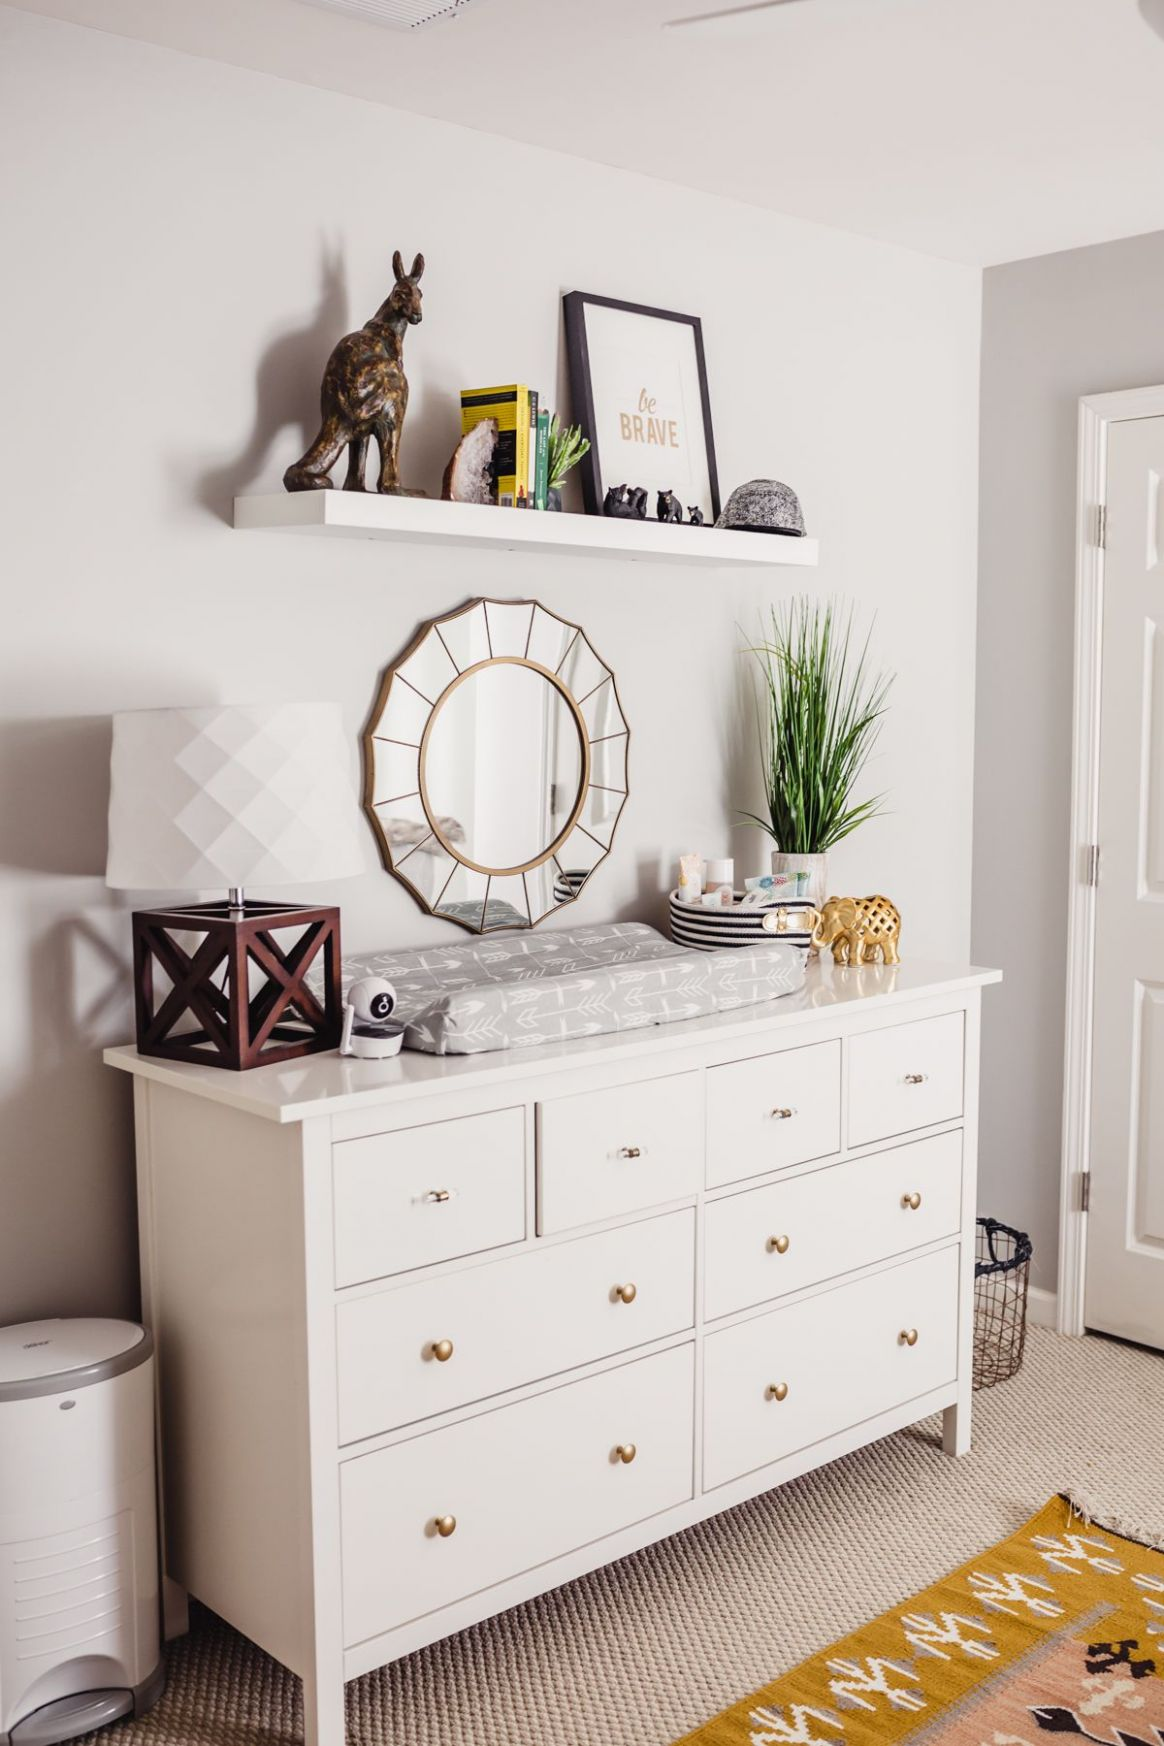 Baby Number 8 (With images)   Nursery dresser decor, Baby room ..